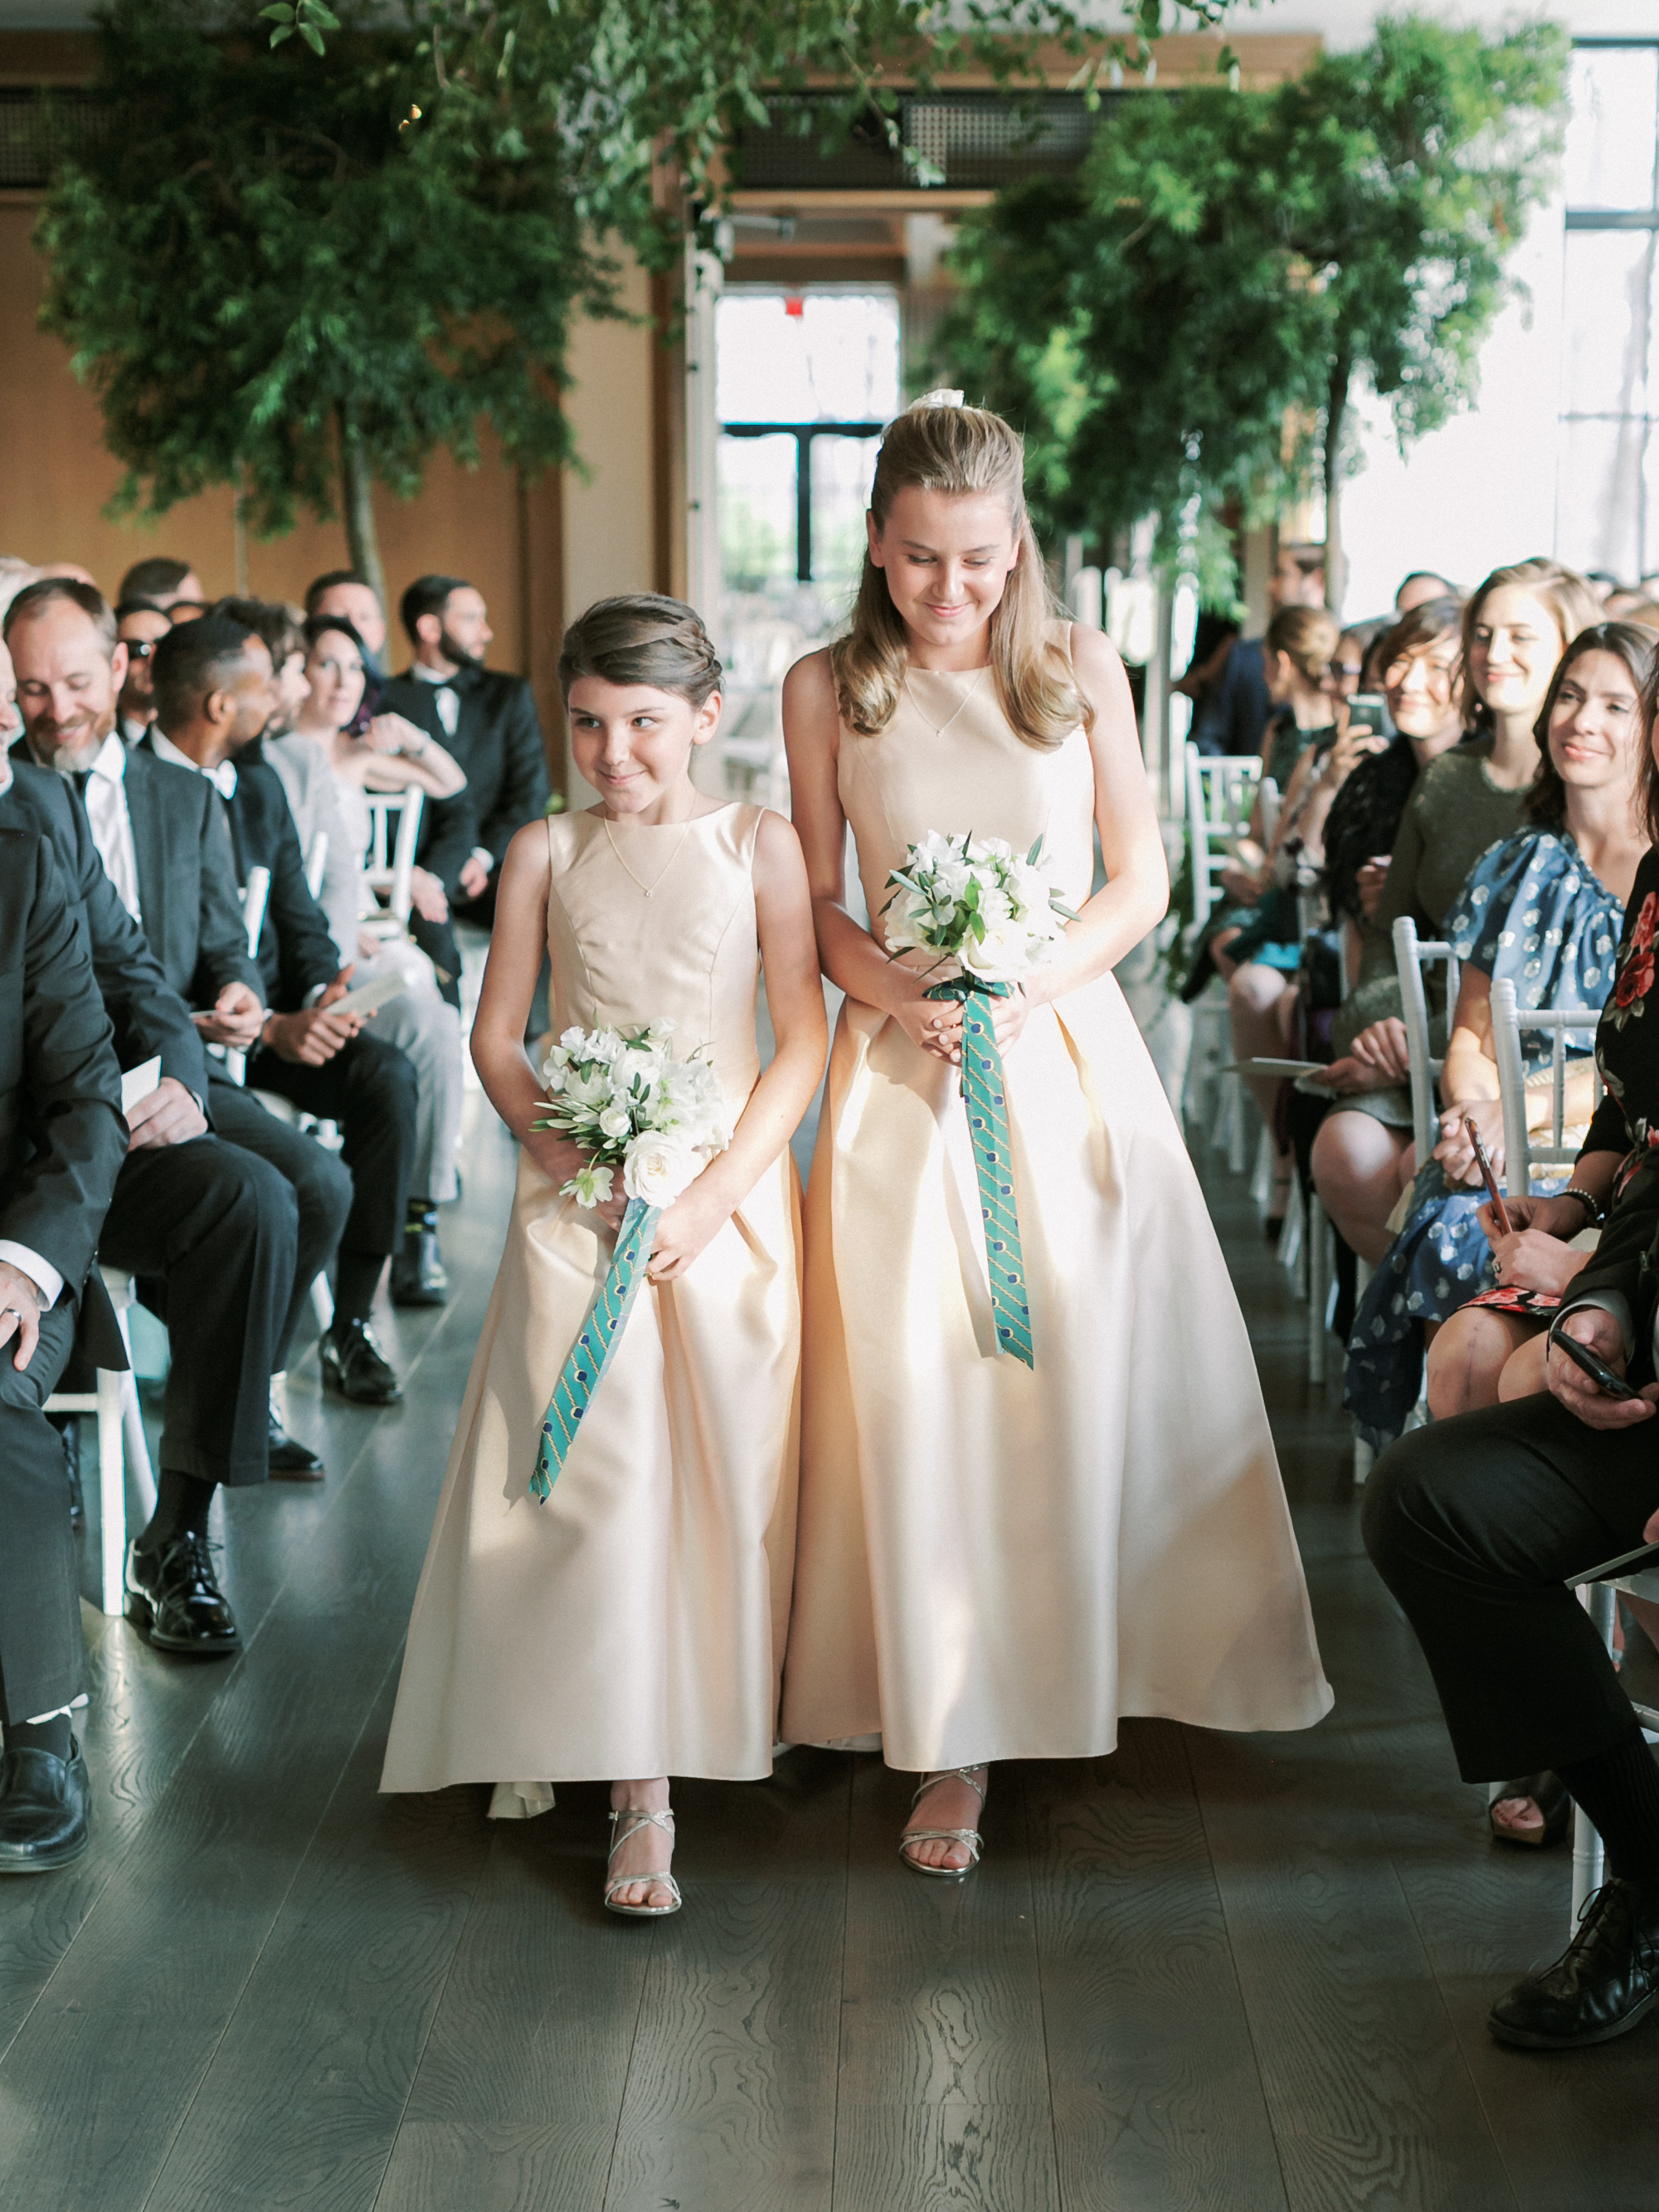 How To Decide If You Should Have Junior Bridesmaids In Your